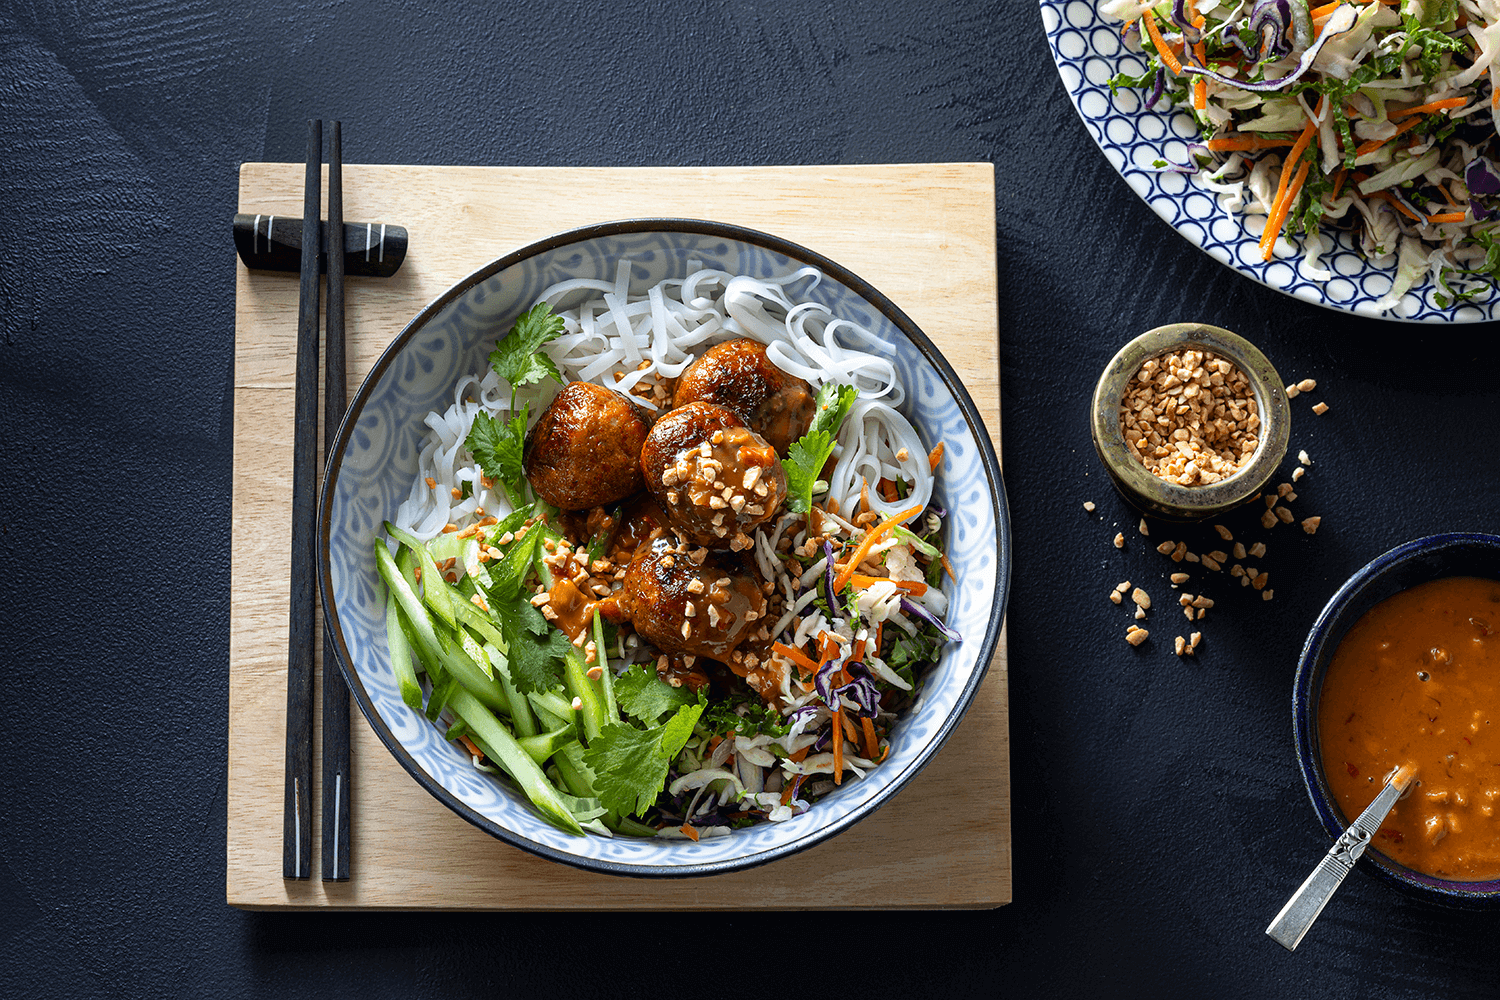 Hellers Great Balls of Fire Meatballs with Quick Rice Noodle Salad & Chopped Peanuts